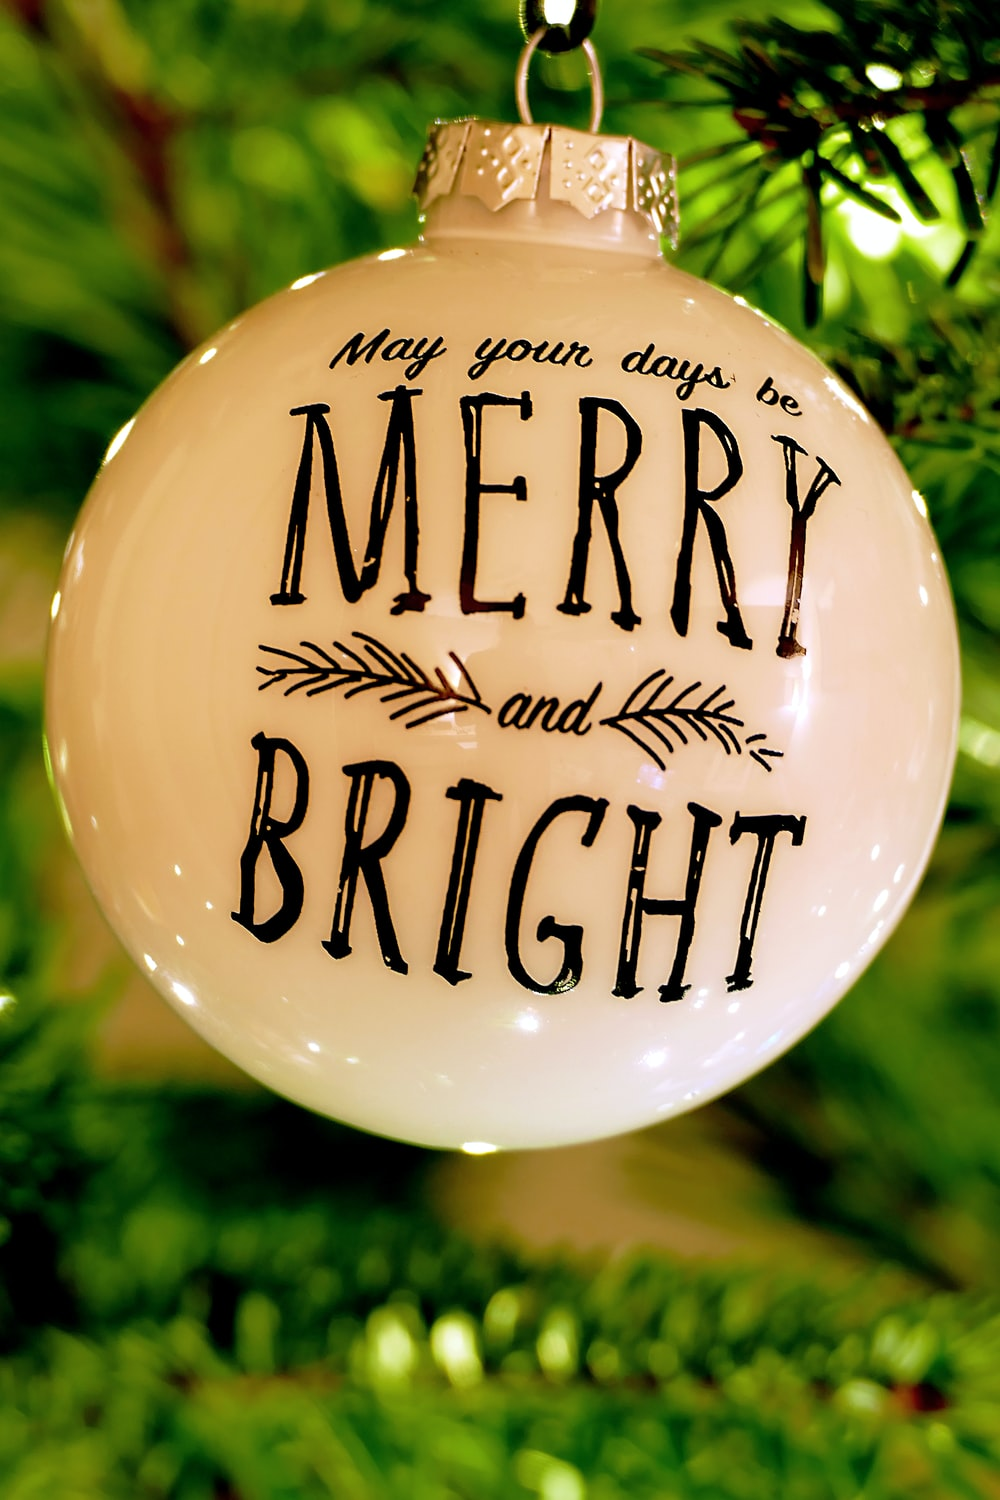 white and black Merry Bright Christmas bauble